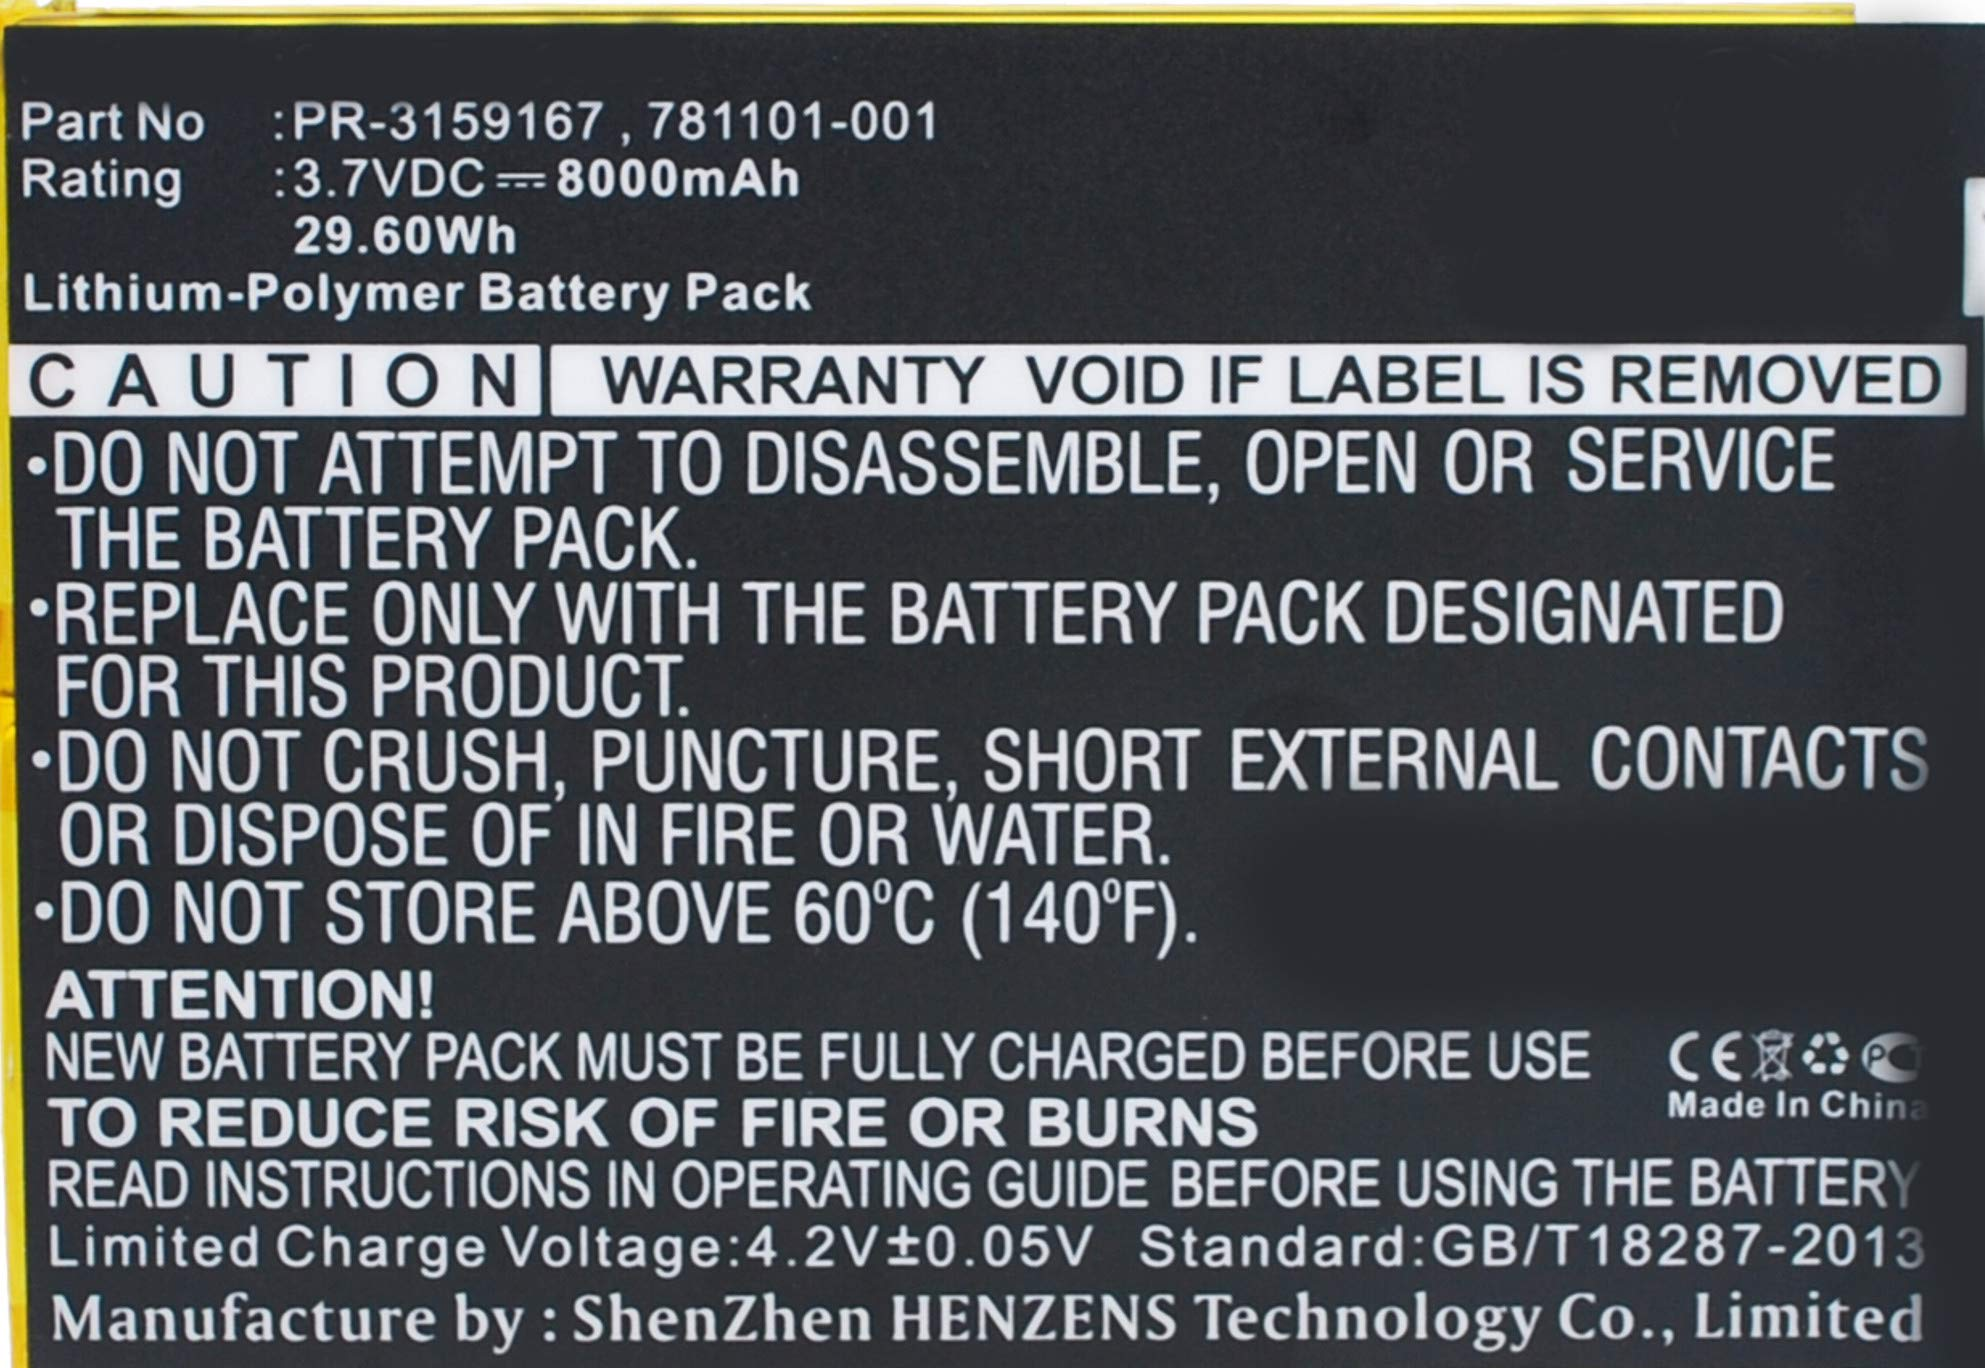 Synergy Digital Battery Compatible with HP 2201 Tablet Battery (Li-Pol, 3.7V, 8000 mAh) - Repl. HP 781101-001 Battery